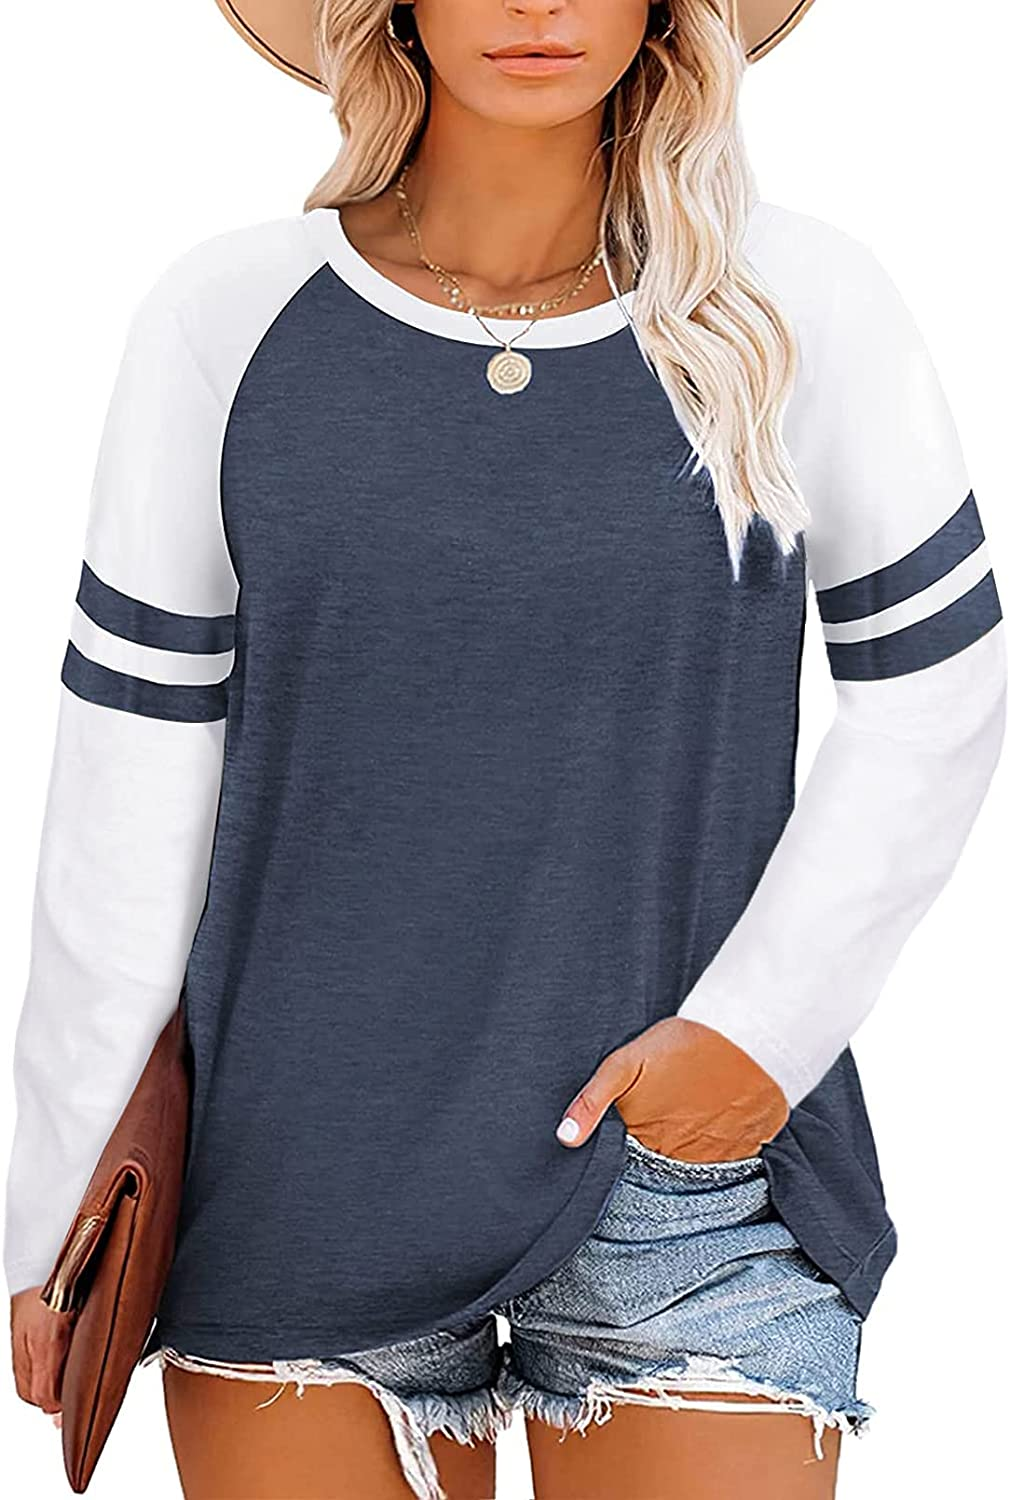 ROSKIKI Womens Casual Plus Size Color Block T-Shirt Summer Short Sleeve Blouse Tops